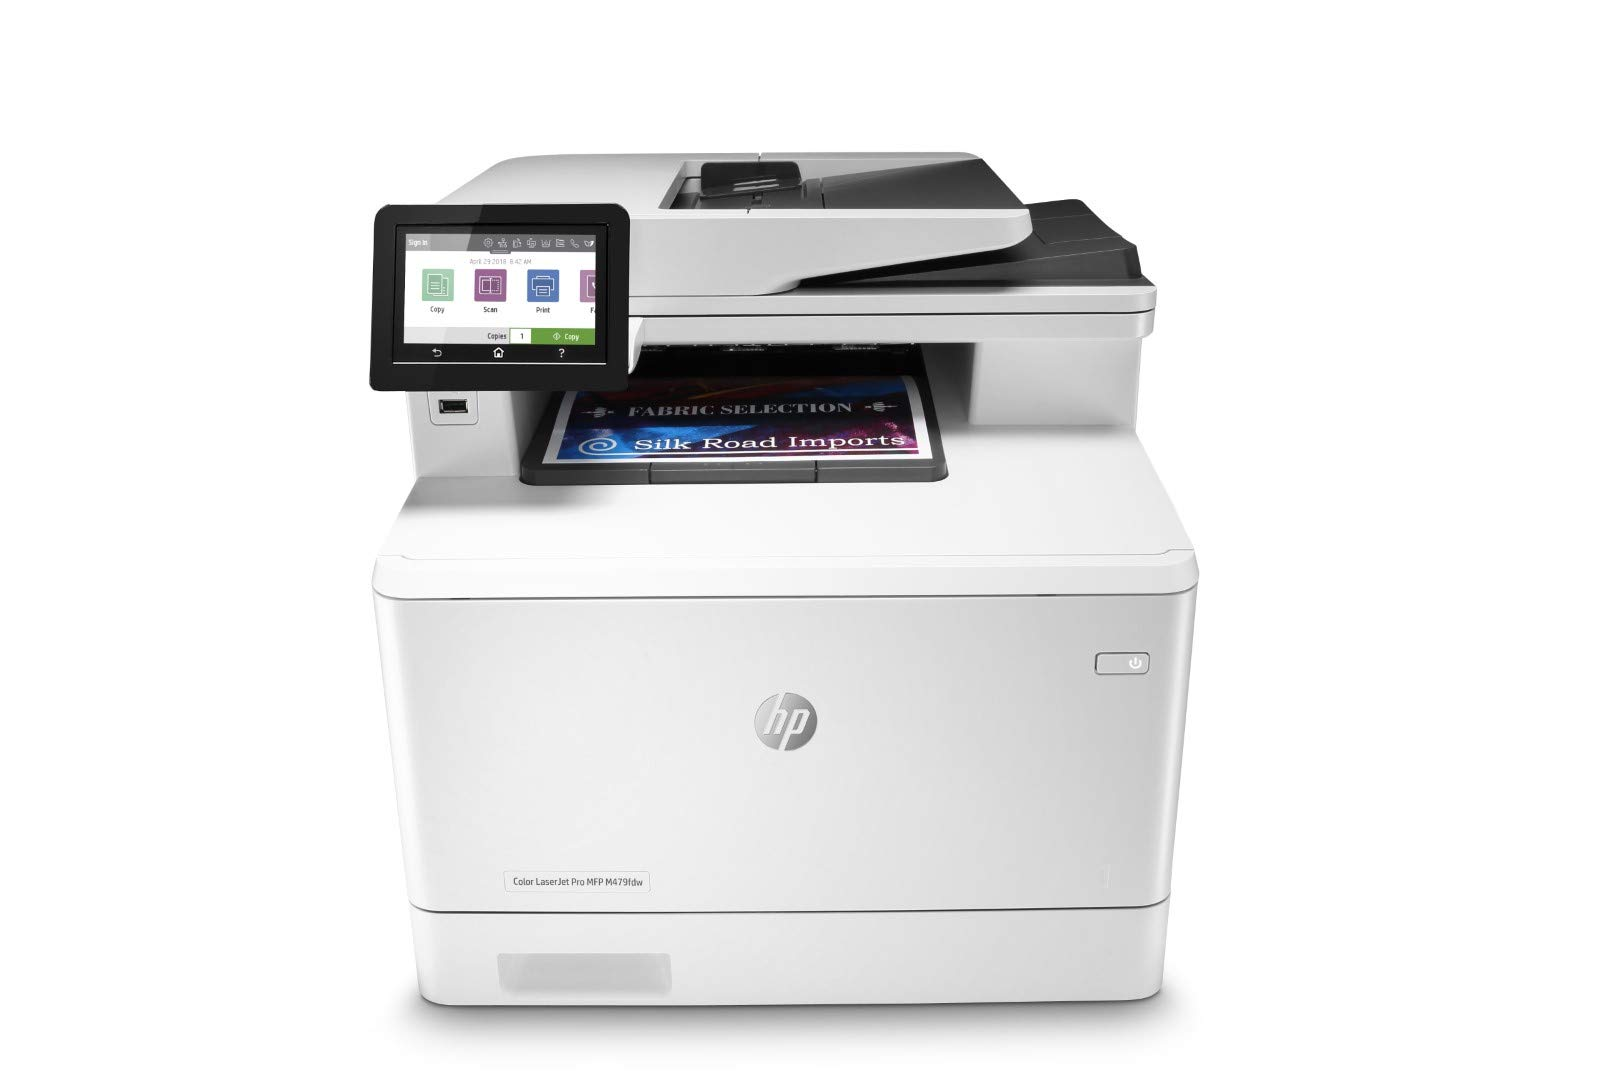 HP Color LaserJet Pro Multifunction M479fdw Wireless Laser Printer with One-Year, Next-Business Day, Onsite Warranty (W1A80A) by HP